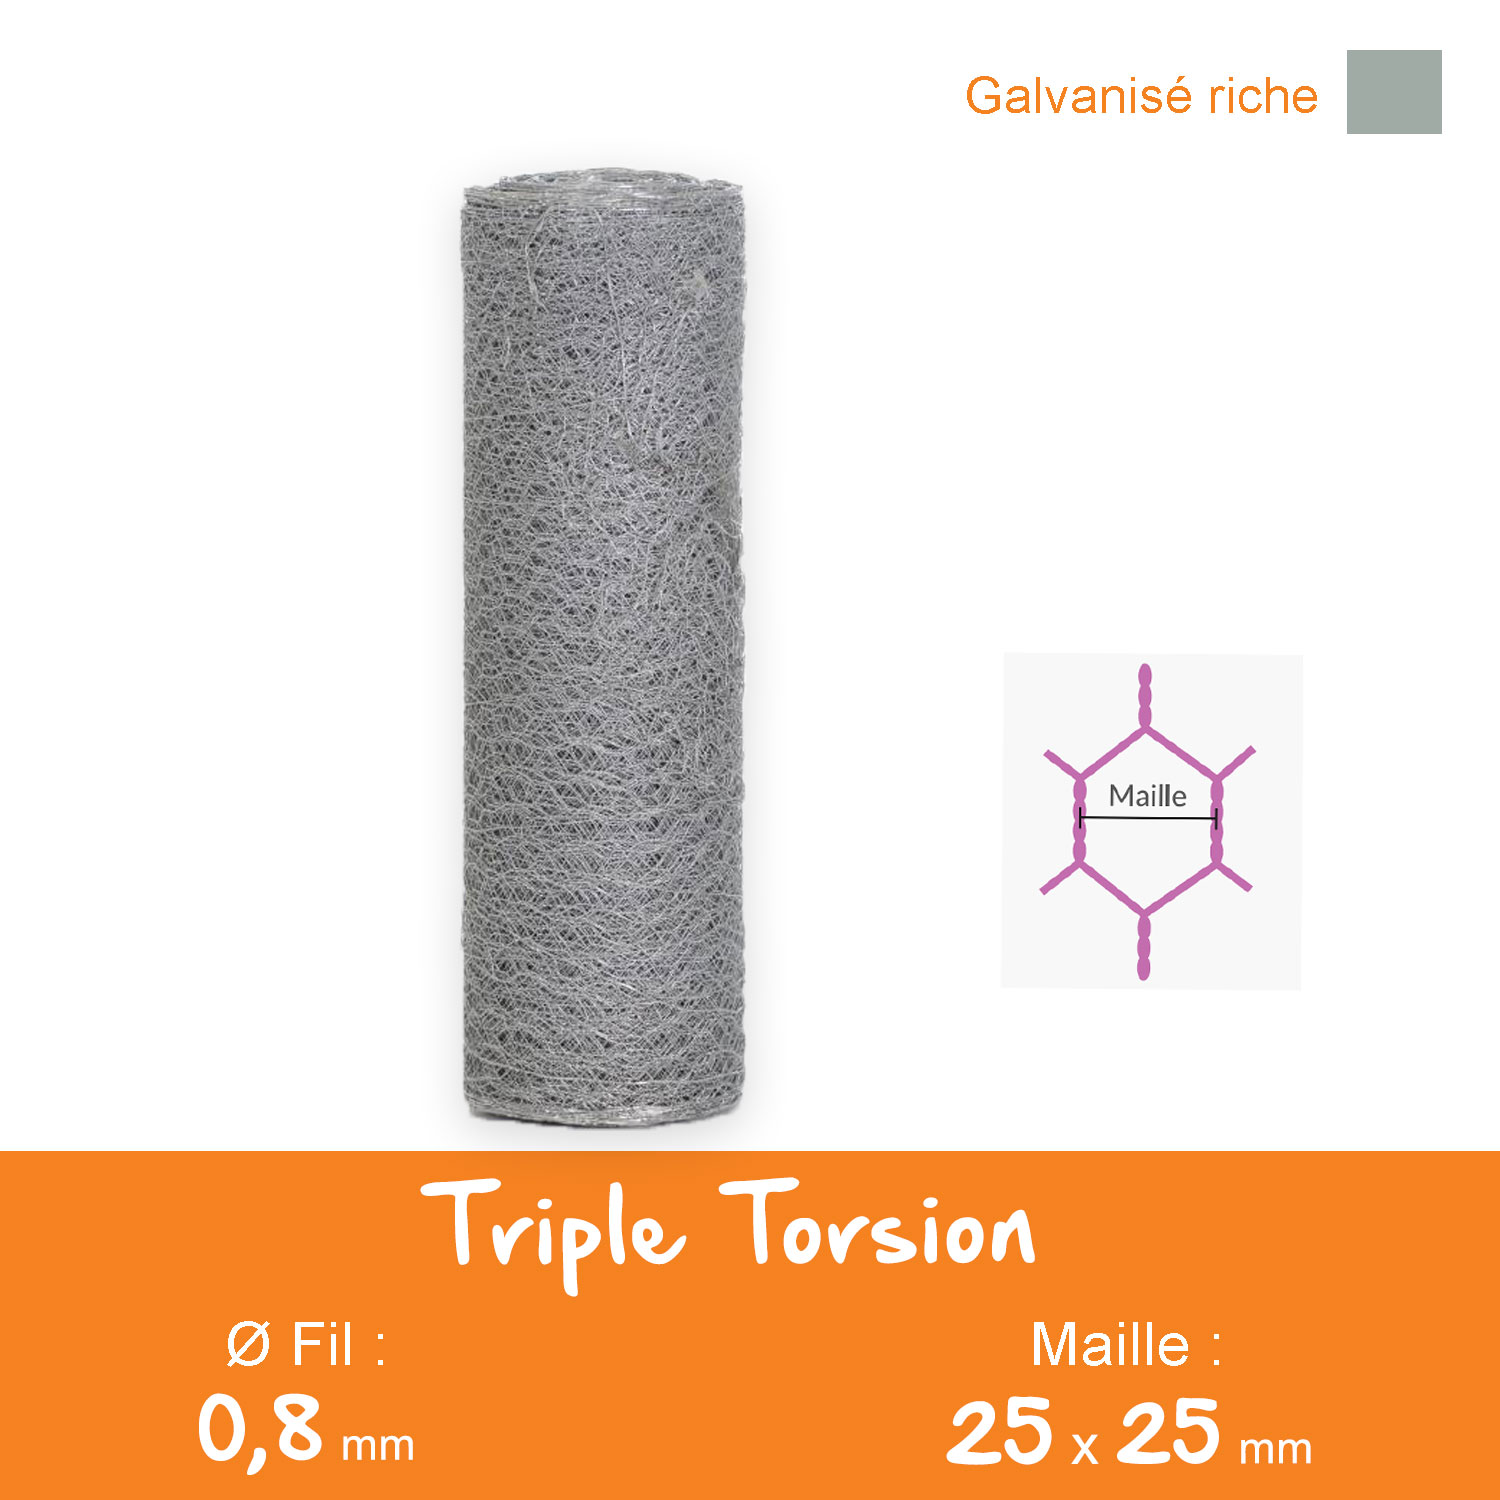 Triple Torsion Galvanisé - Maille 25 mm - Ø 0,8 mm